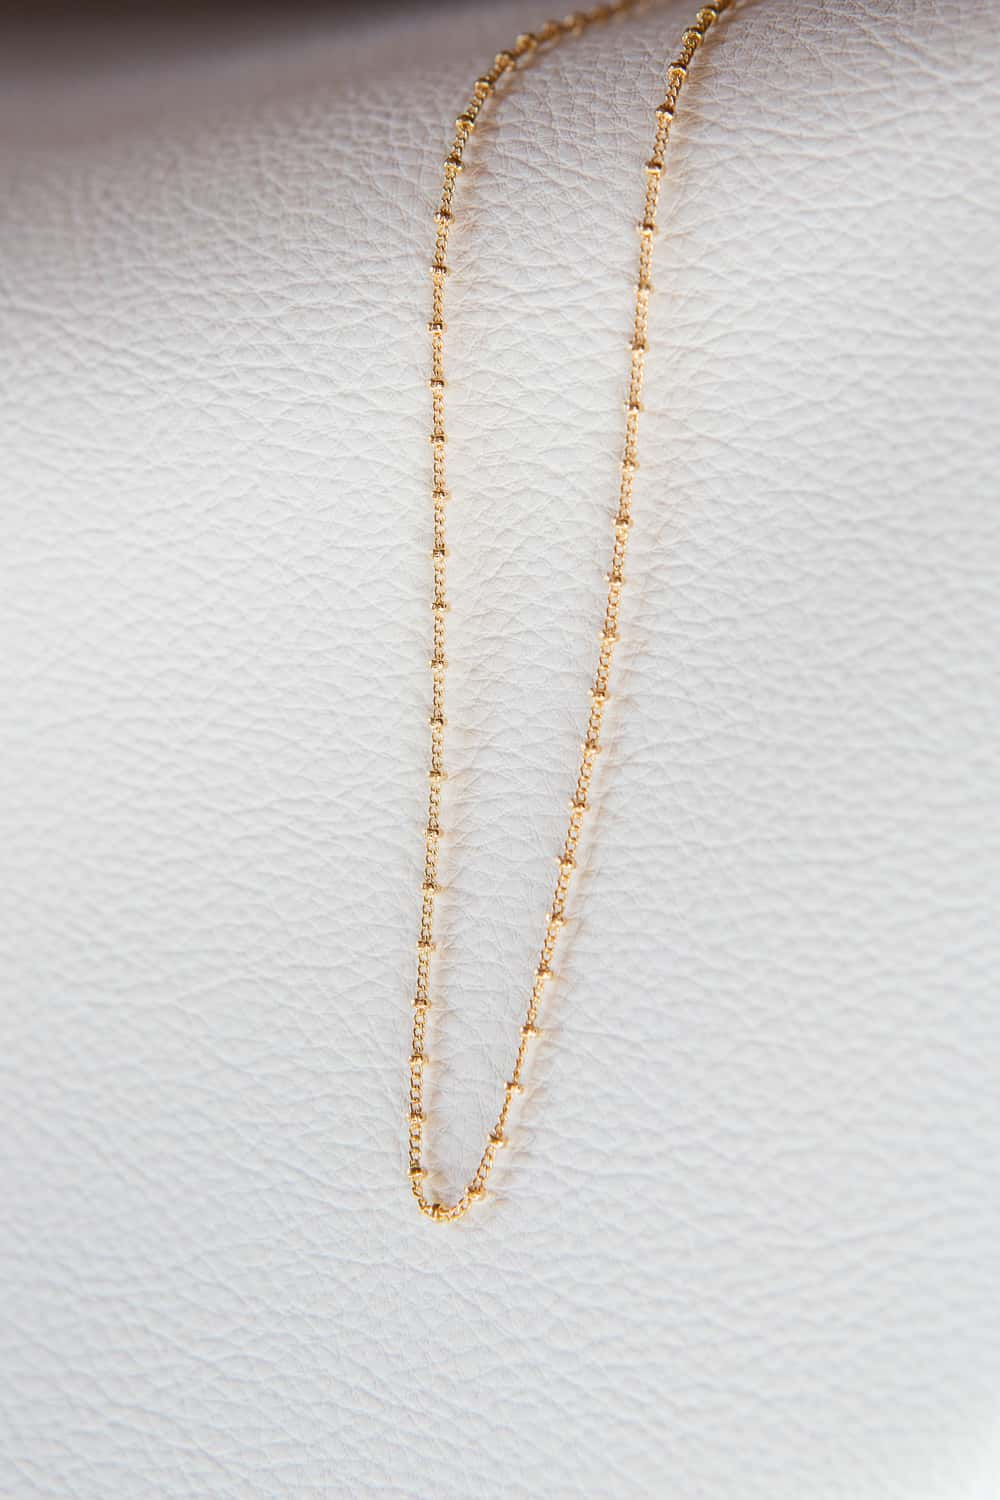 1.75mm Gold Filled Satellite Bead Chain Necklace